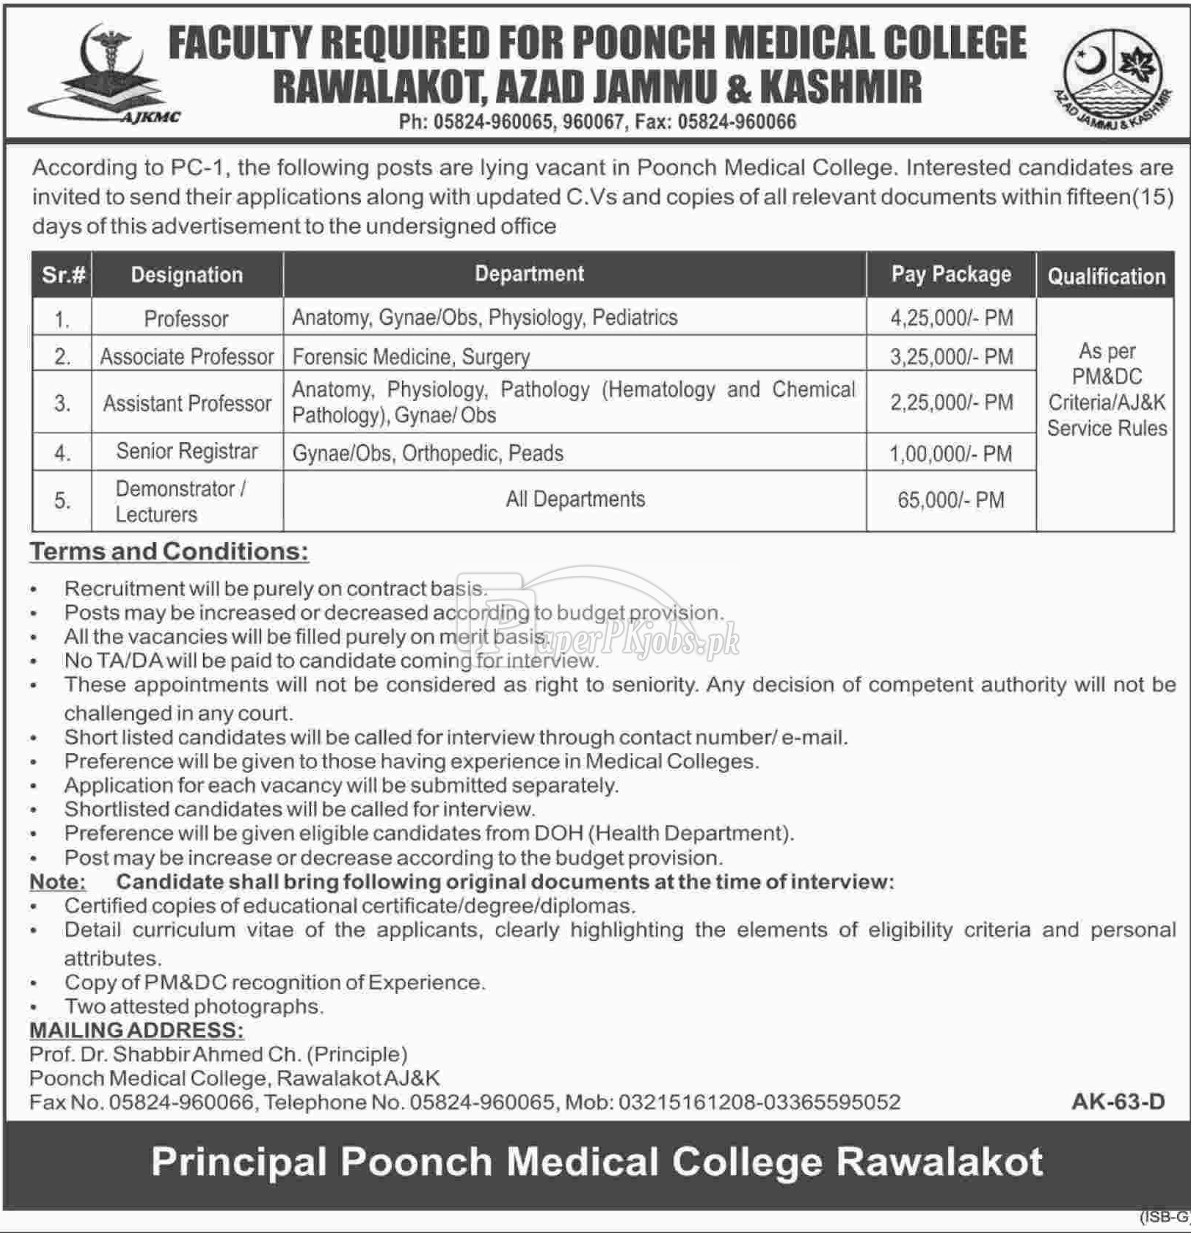 Poonch Medical College Rawalakot AJK Jobs 2018